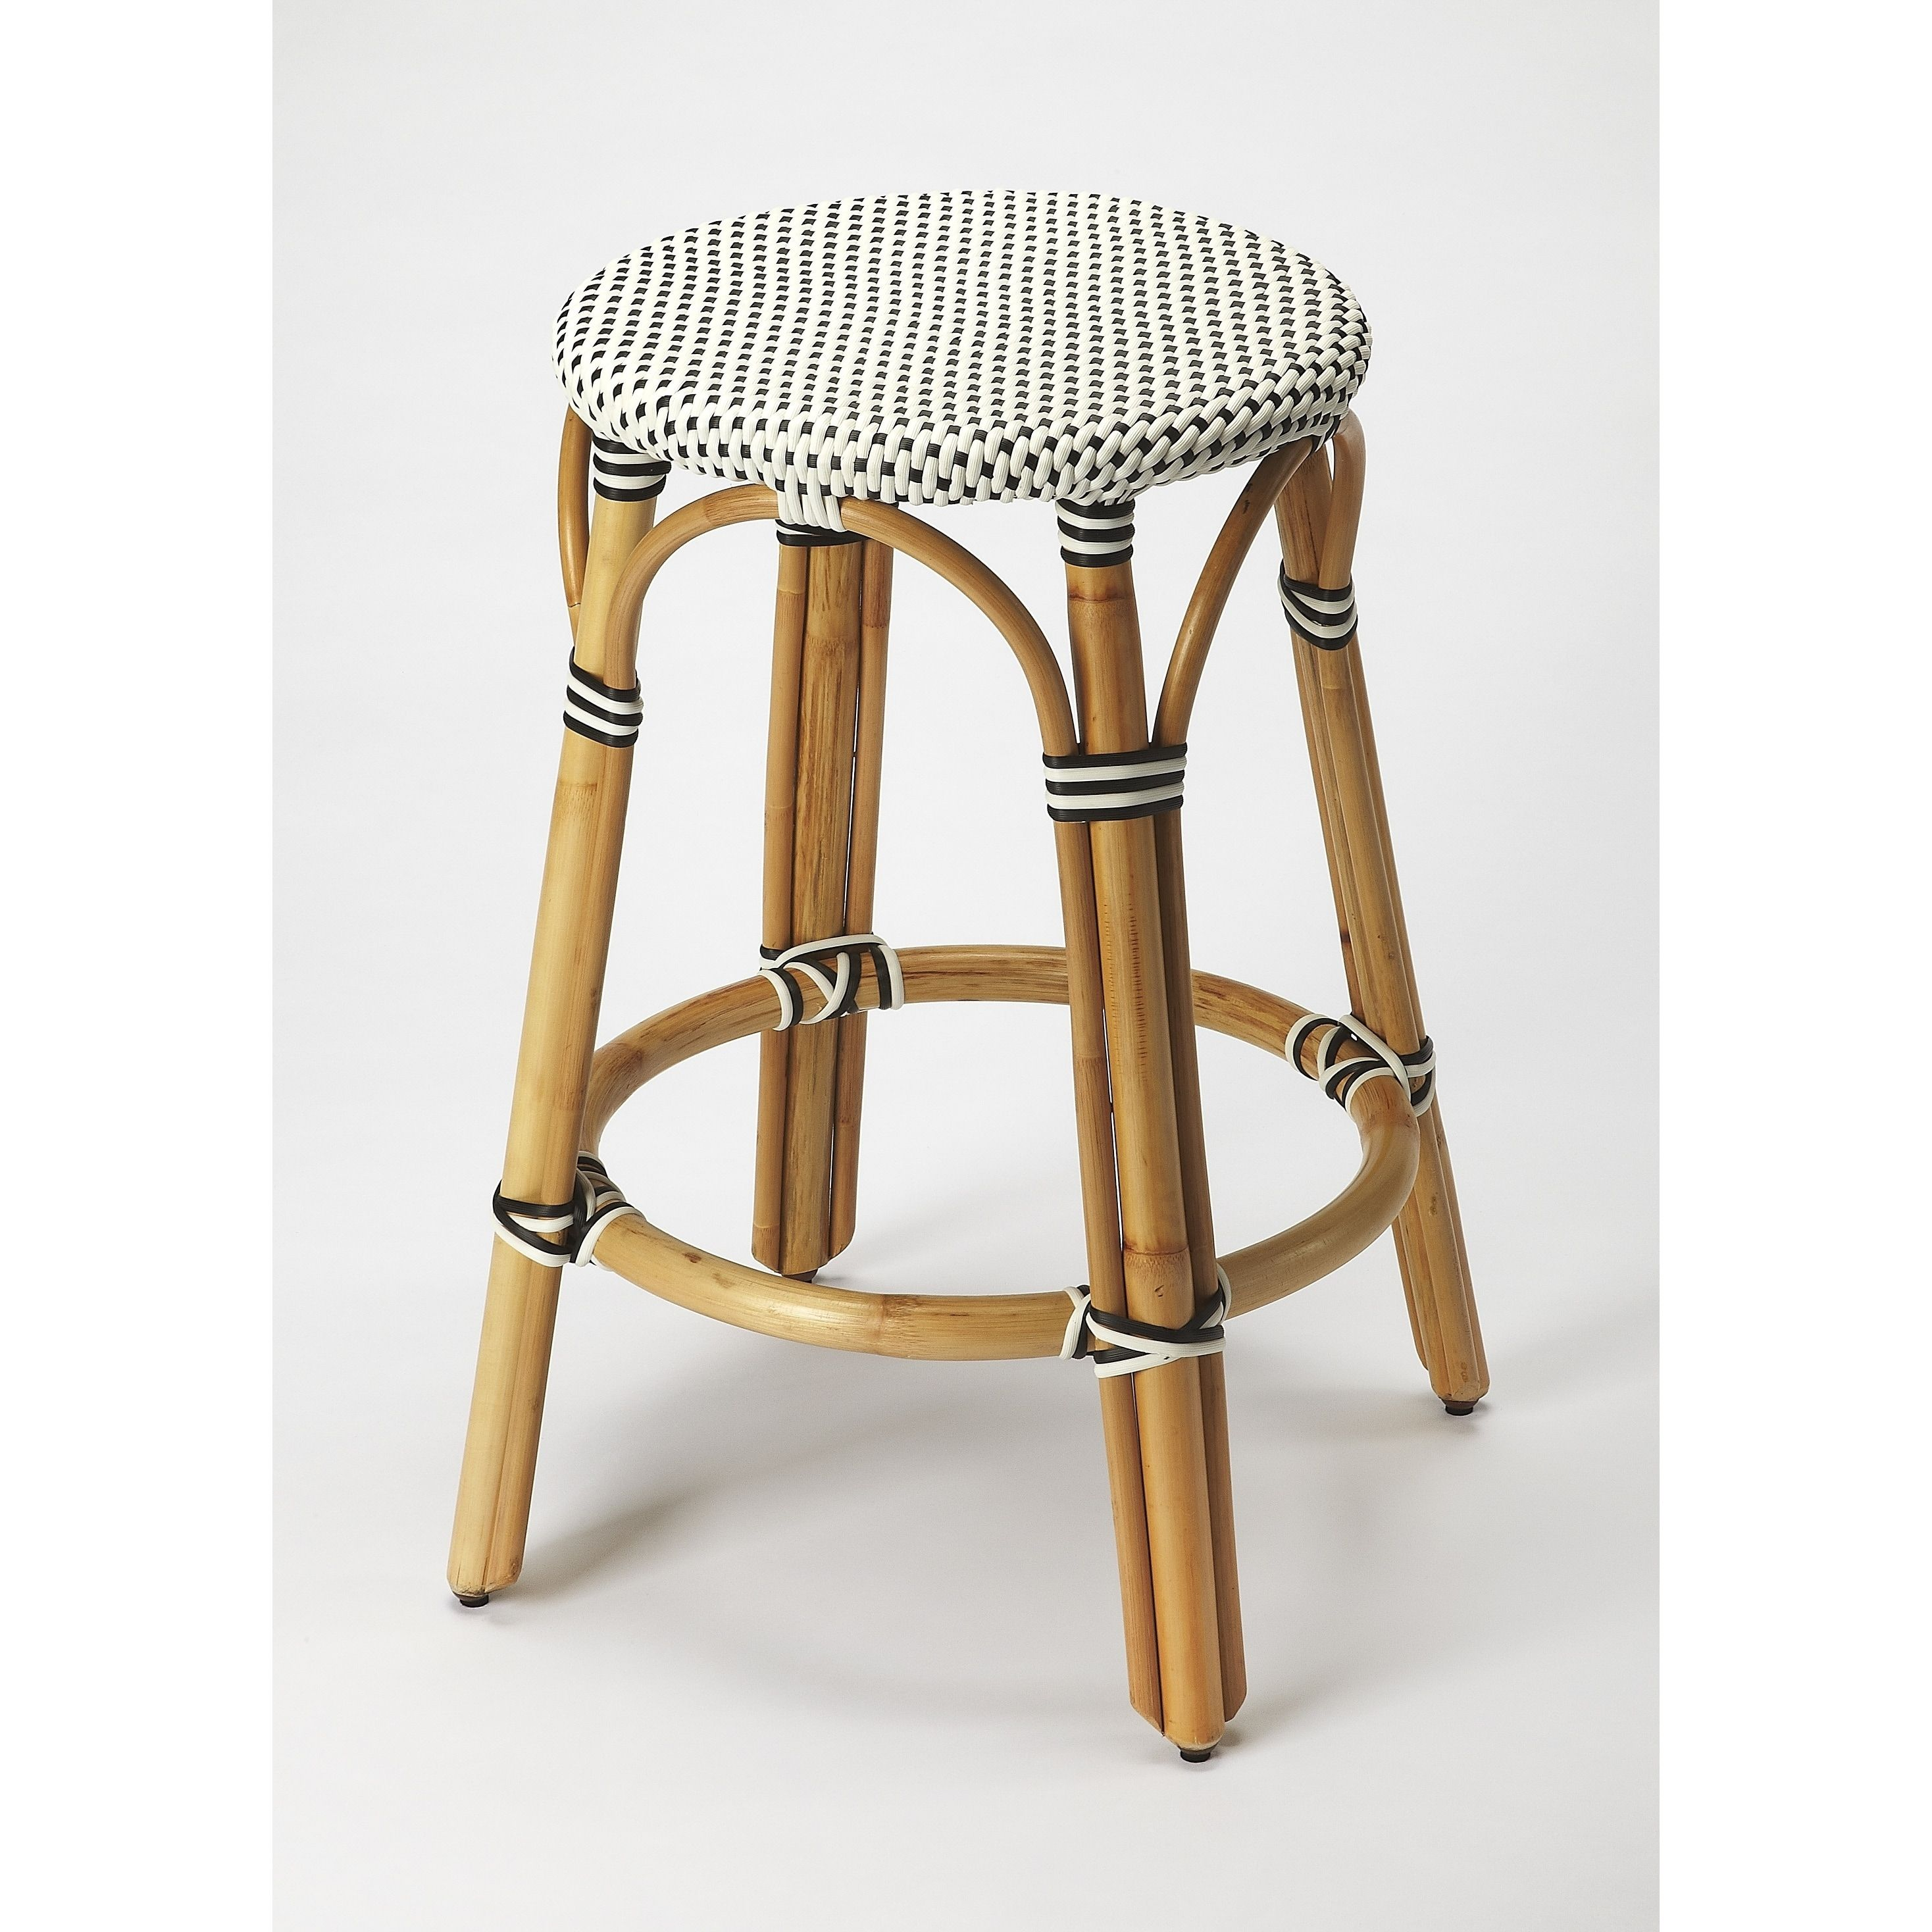 park black stools set overstock shipping home of free today product stool safavieh inch garden counter mid ave century